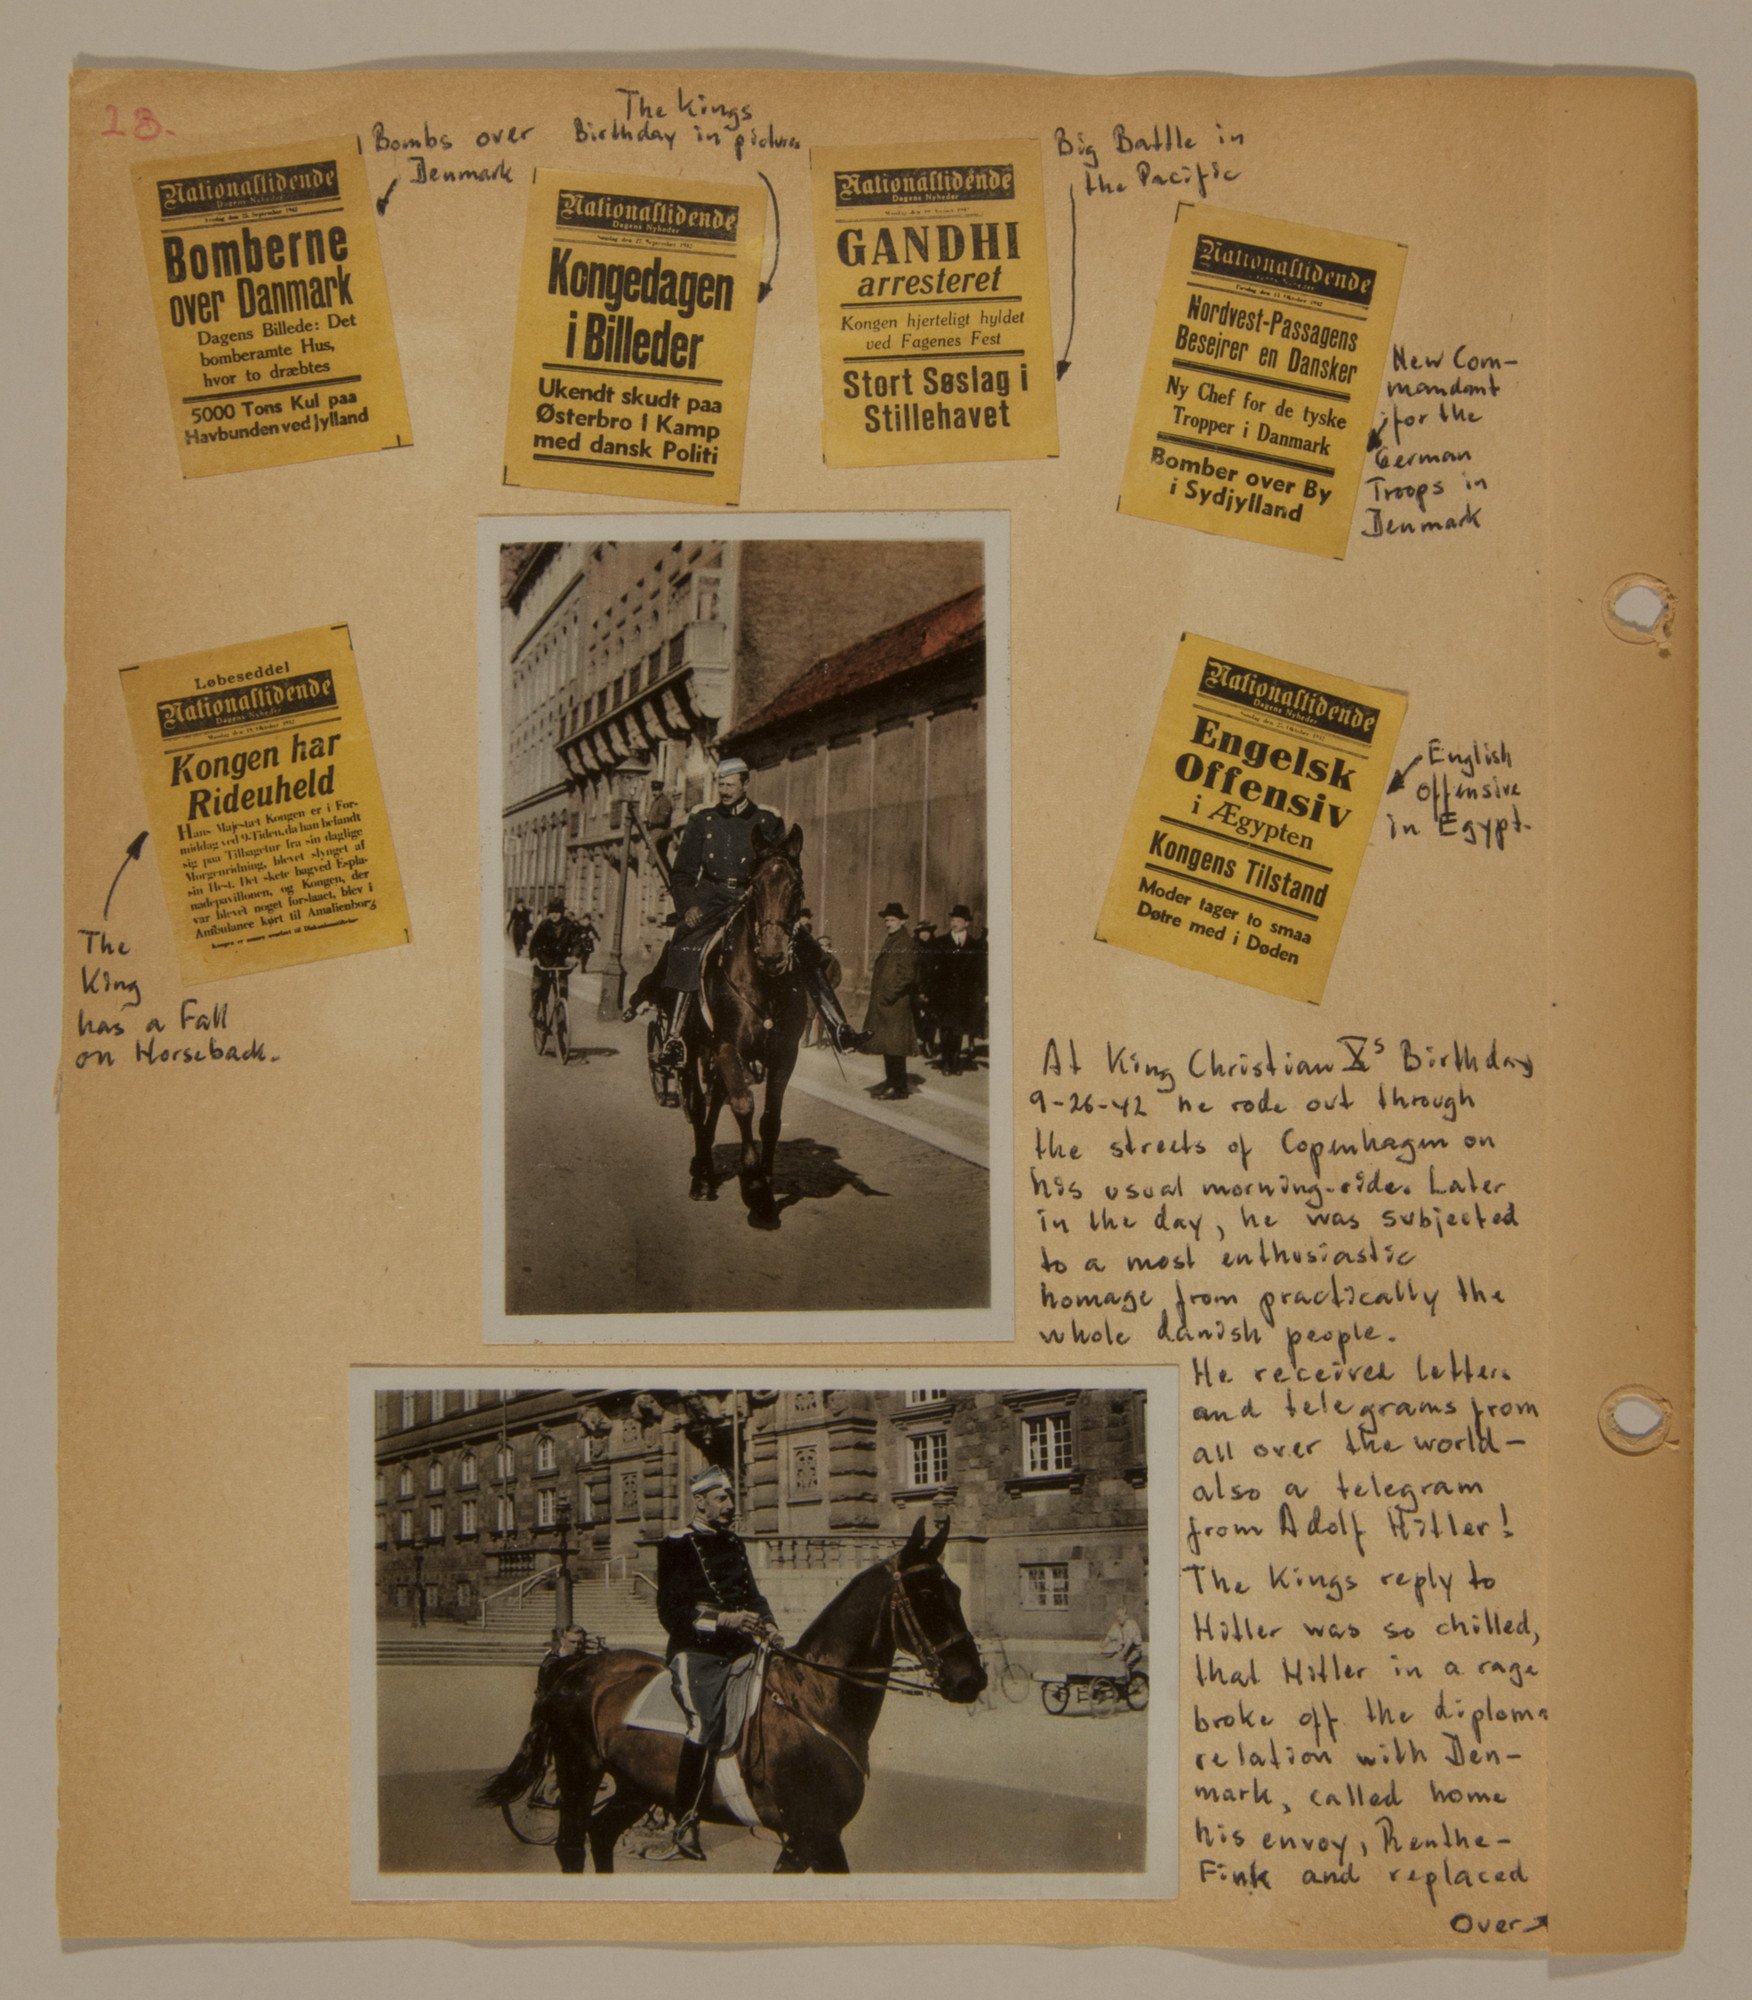 Page from volume three of a set of scrapbooks compiled by Bjorn Sibbern, a Danish policeman and resistance member, documenting the German occupation of Denmark.  This page contains photographs of King Christian X riding through the streets of Copenhagen as well as newspaper headlines.